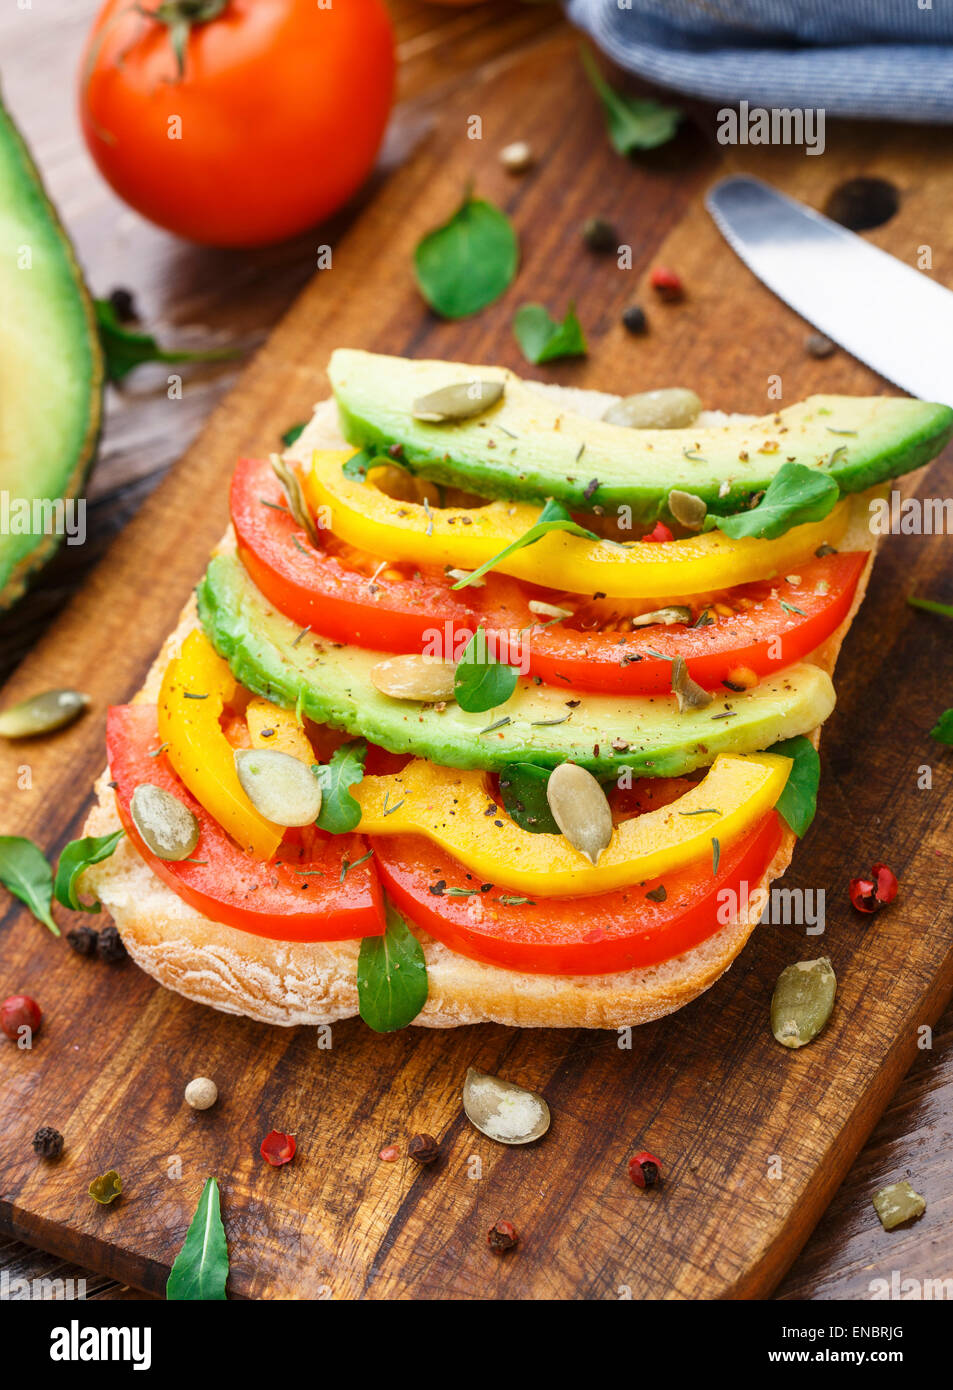 Vegetarian avocado sandwich with tomato and paprika - Stock Image